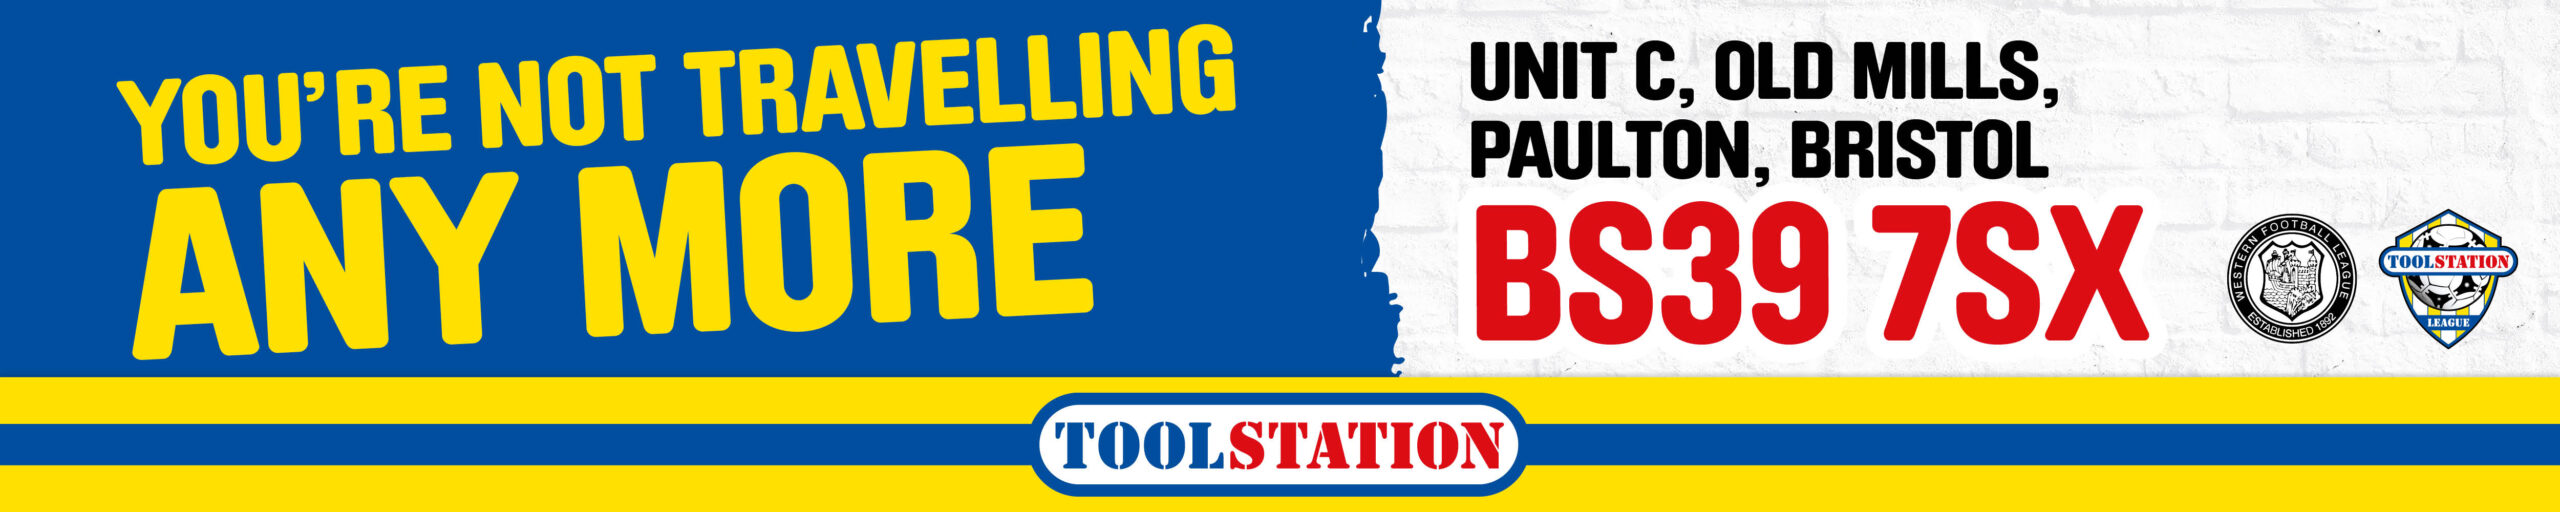 Toolstation Taunton